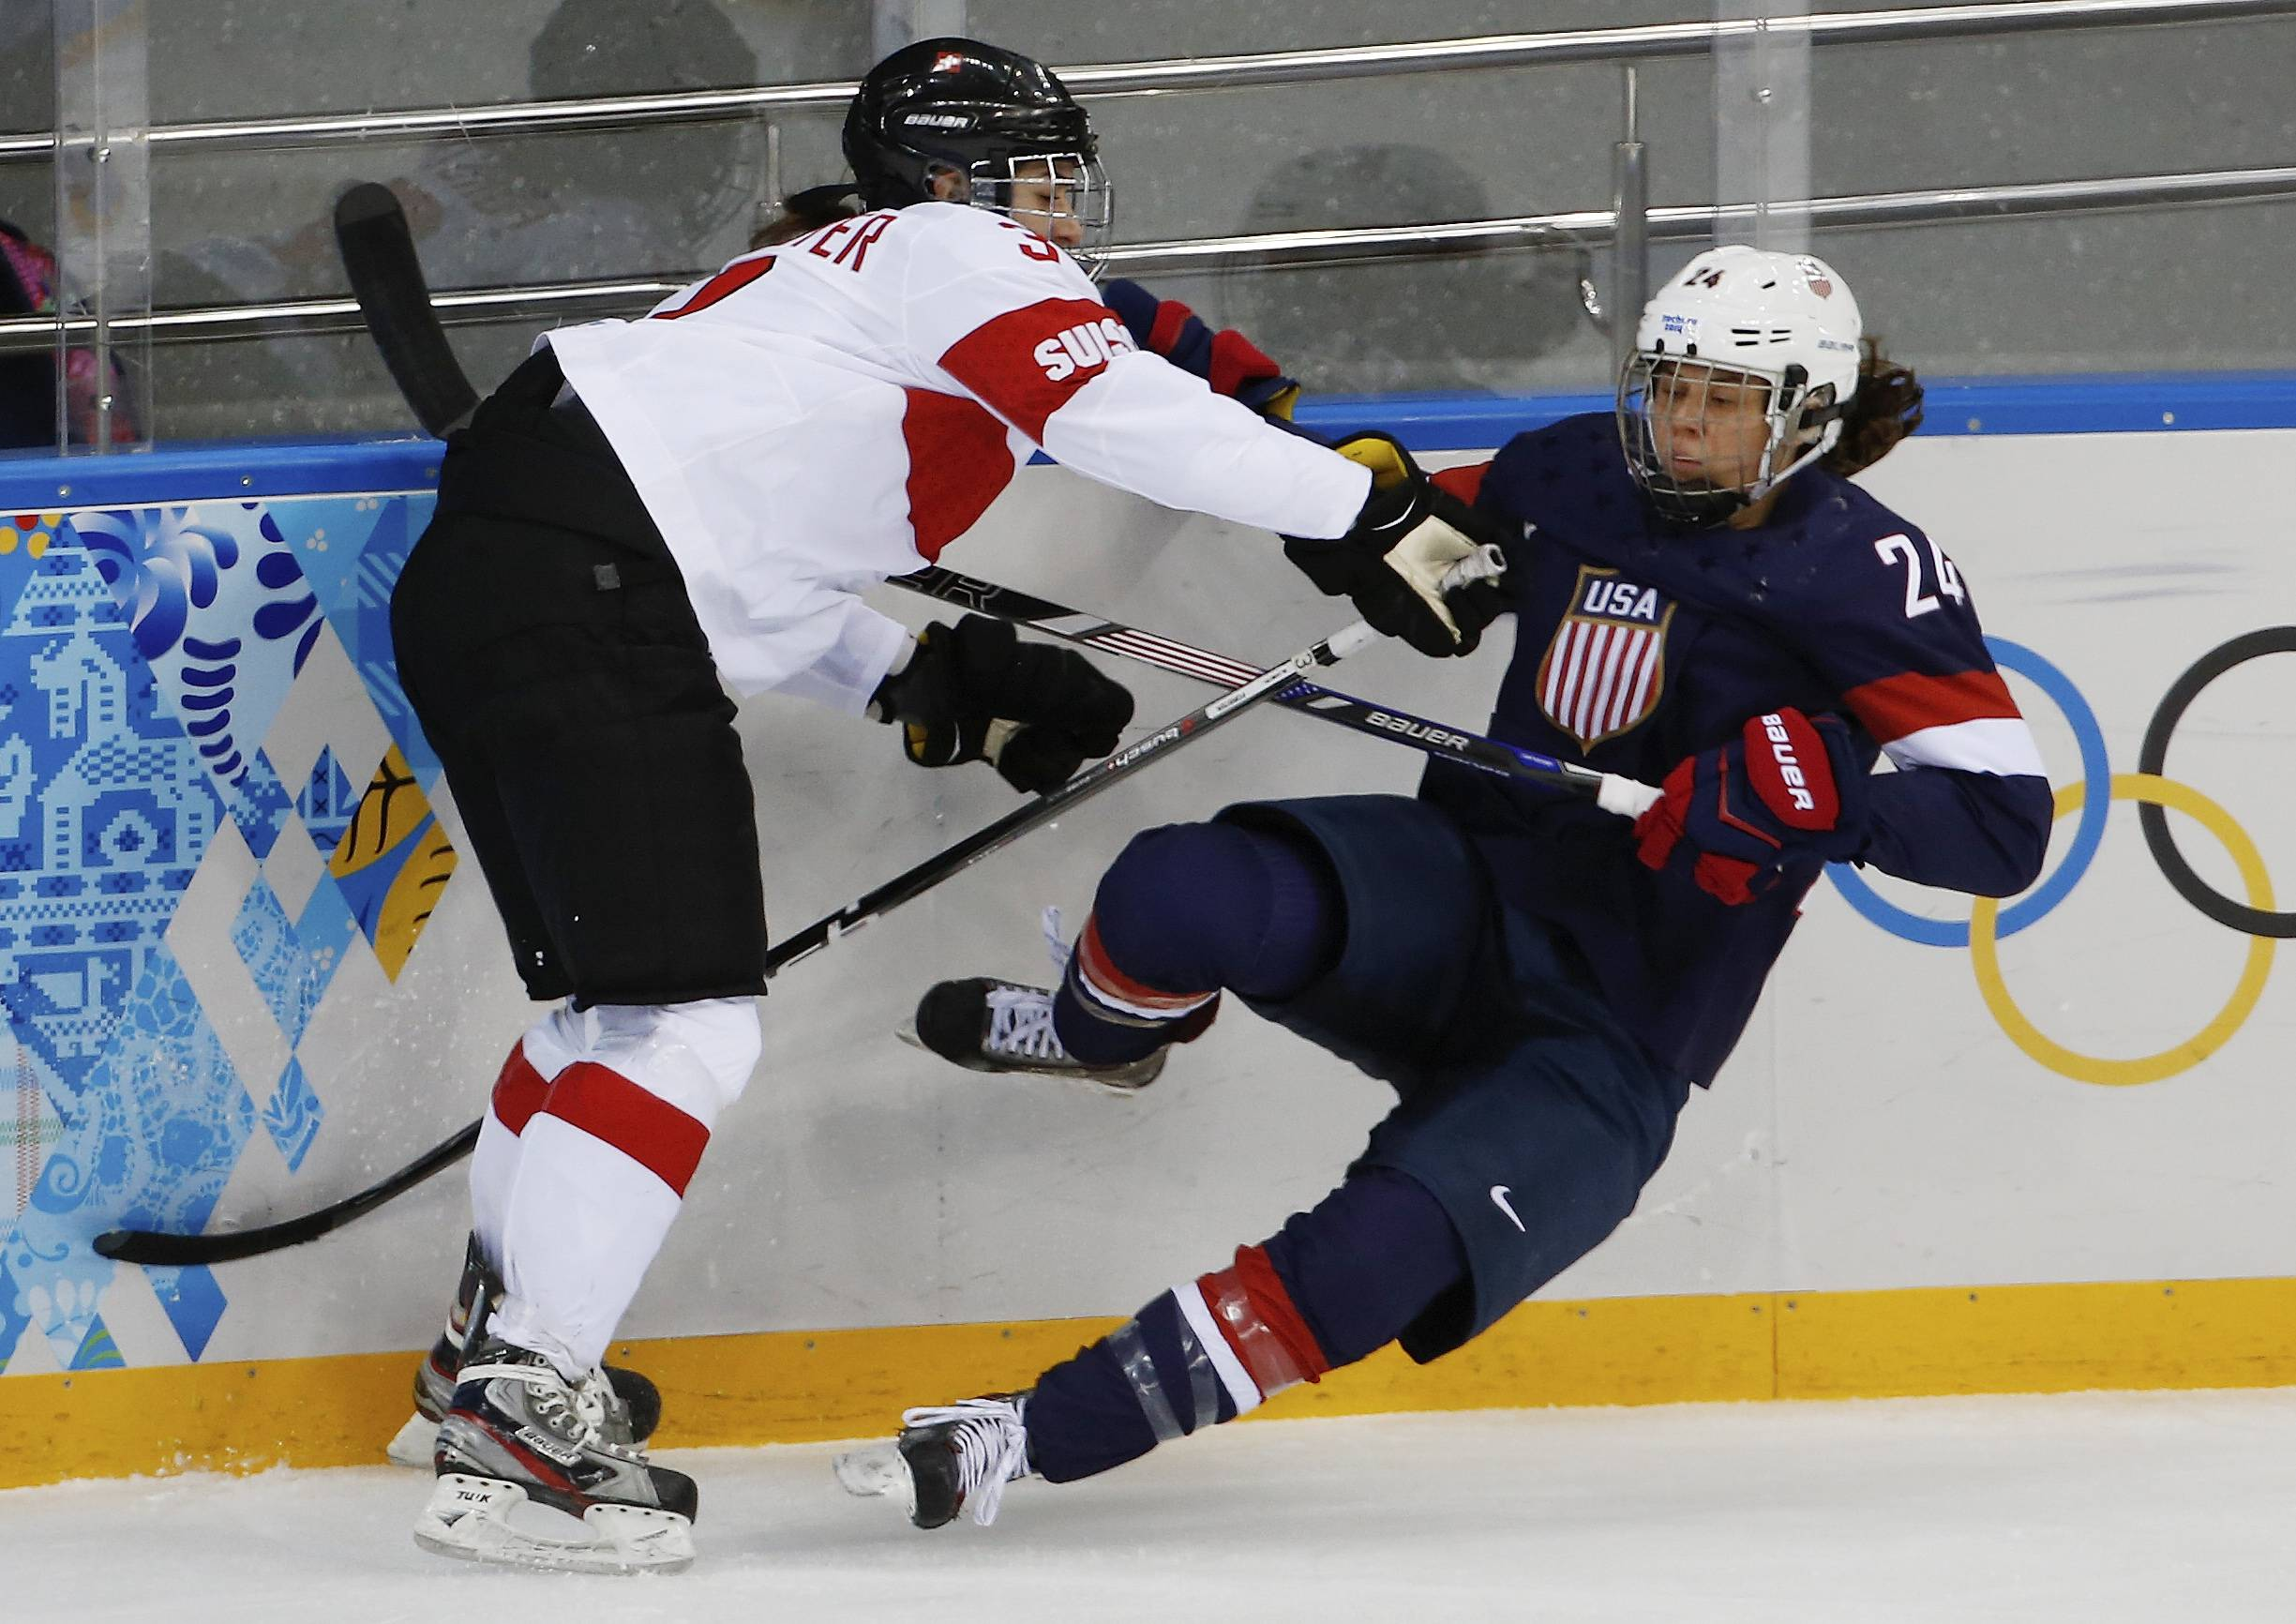 Sarah Forster of Switzerland collides with Josephine Pucci of the Untied States during the first period.